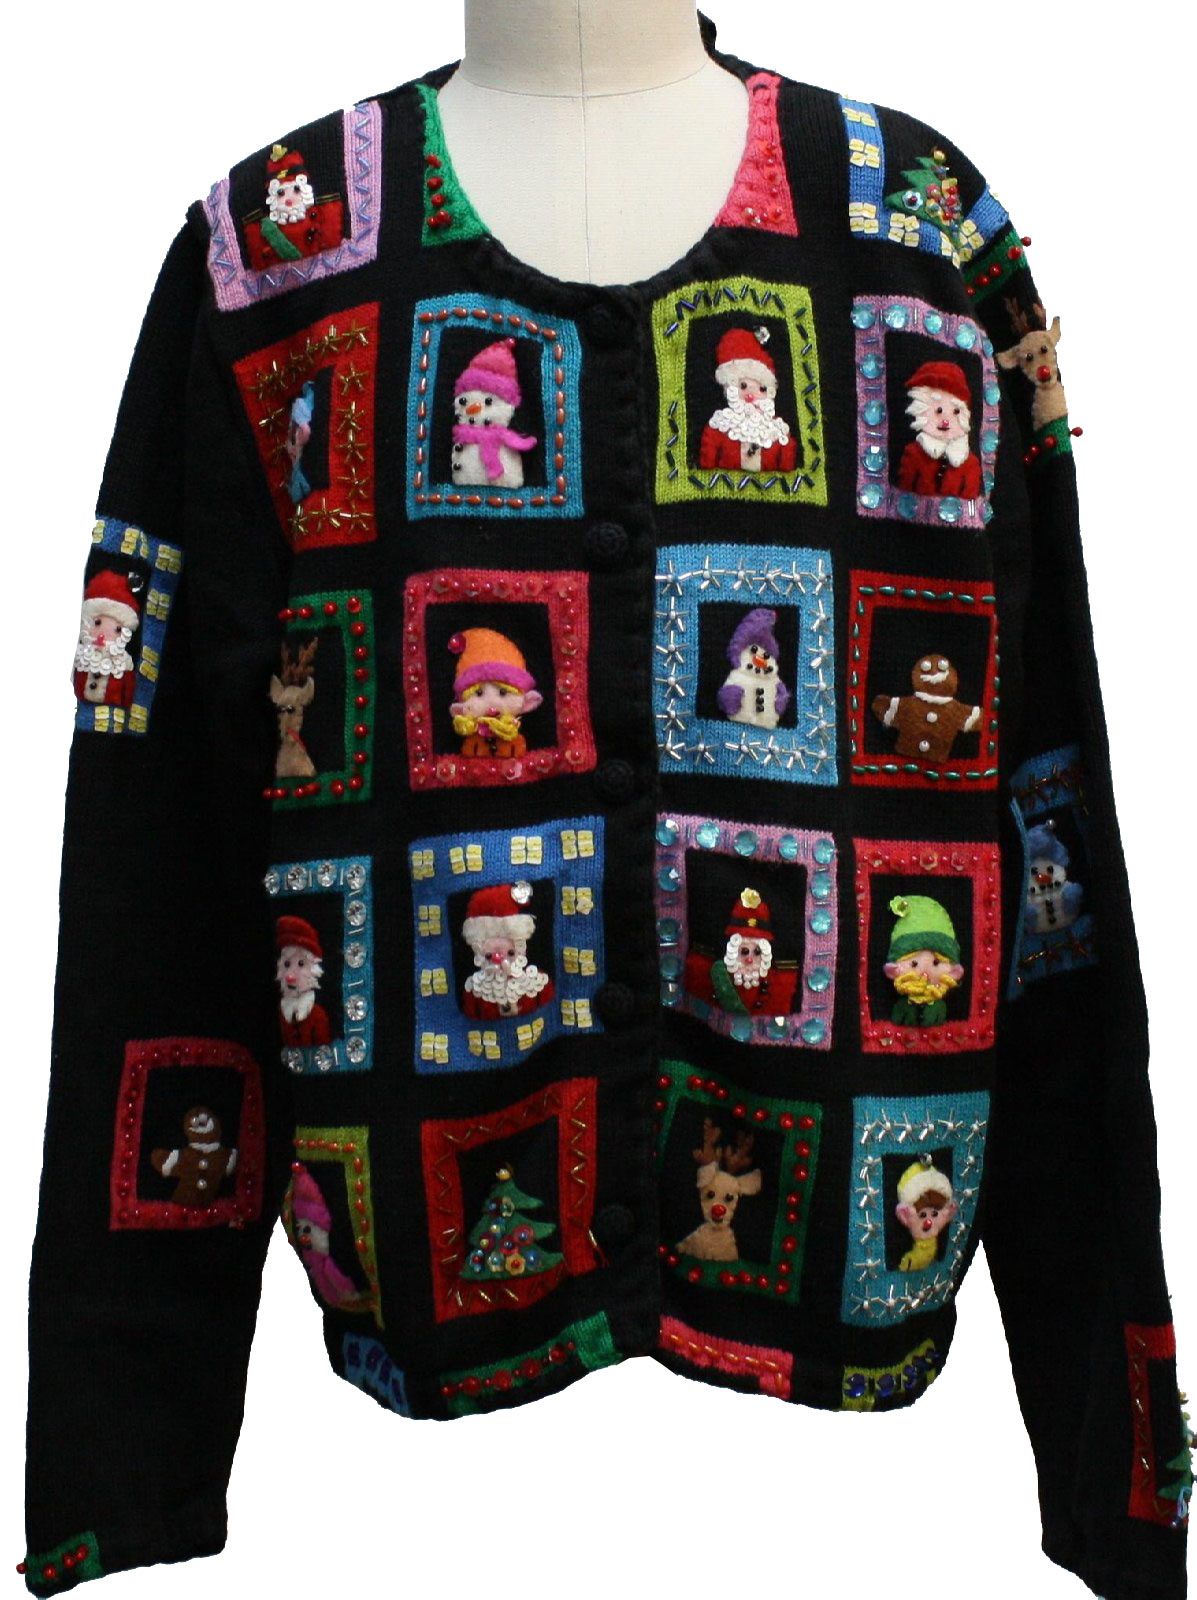 Michael Simon Womens/Girls Ugly Christmas Sweater $32.00 Not in stock. Item No. 229438